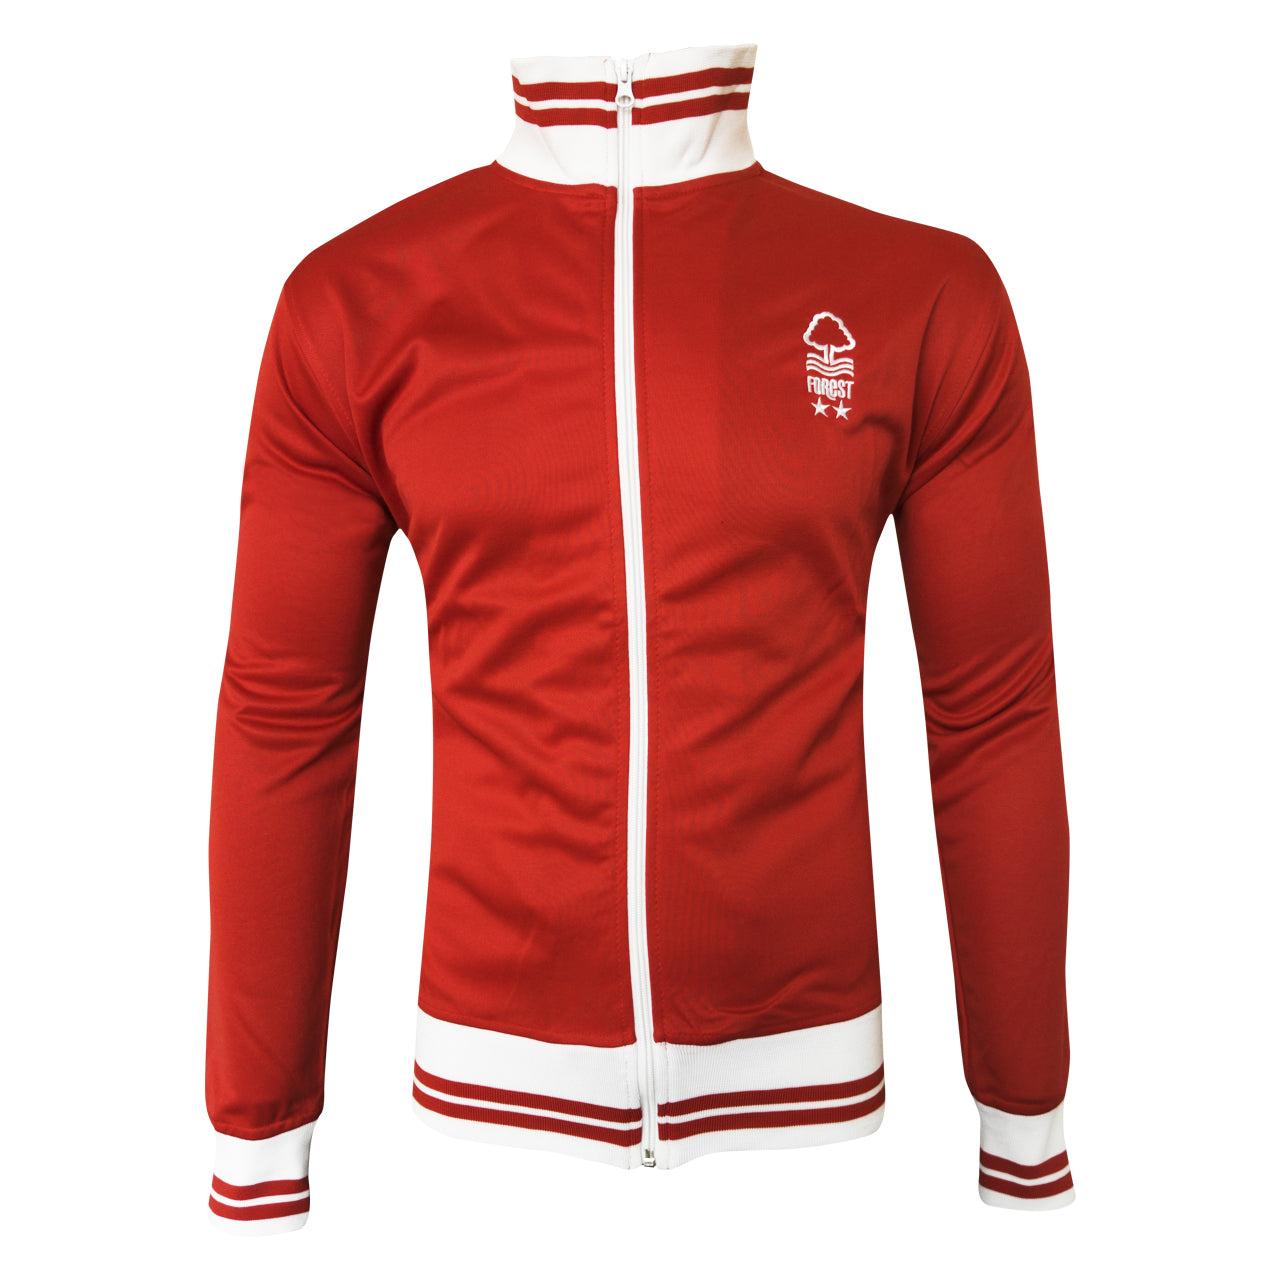 NFFC Mens Home Track Jacket